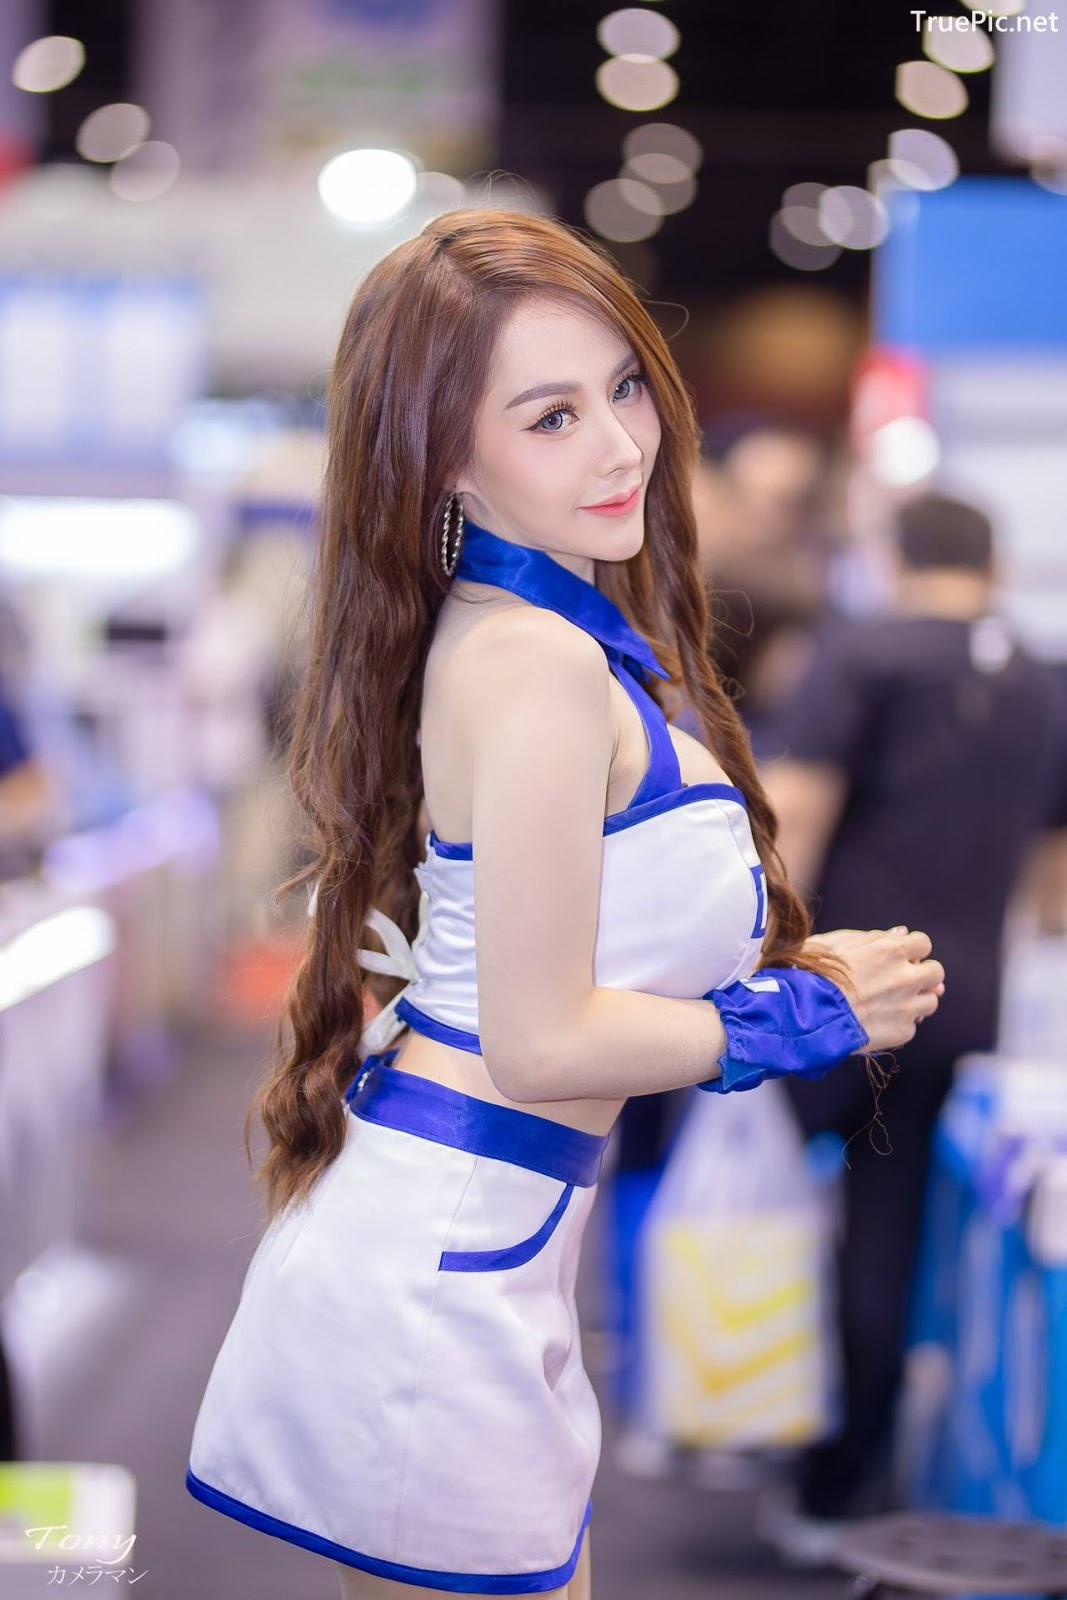 Image-Thailand-Hot-Model-Thai-PG-At-Commart-2018-TruePic.net- Picture-27